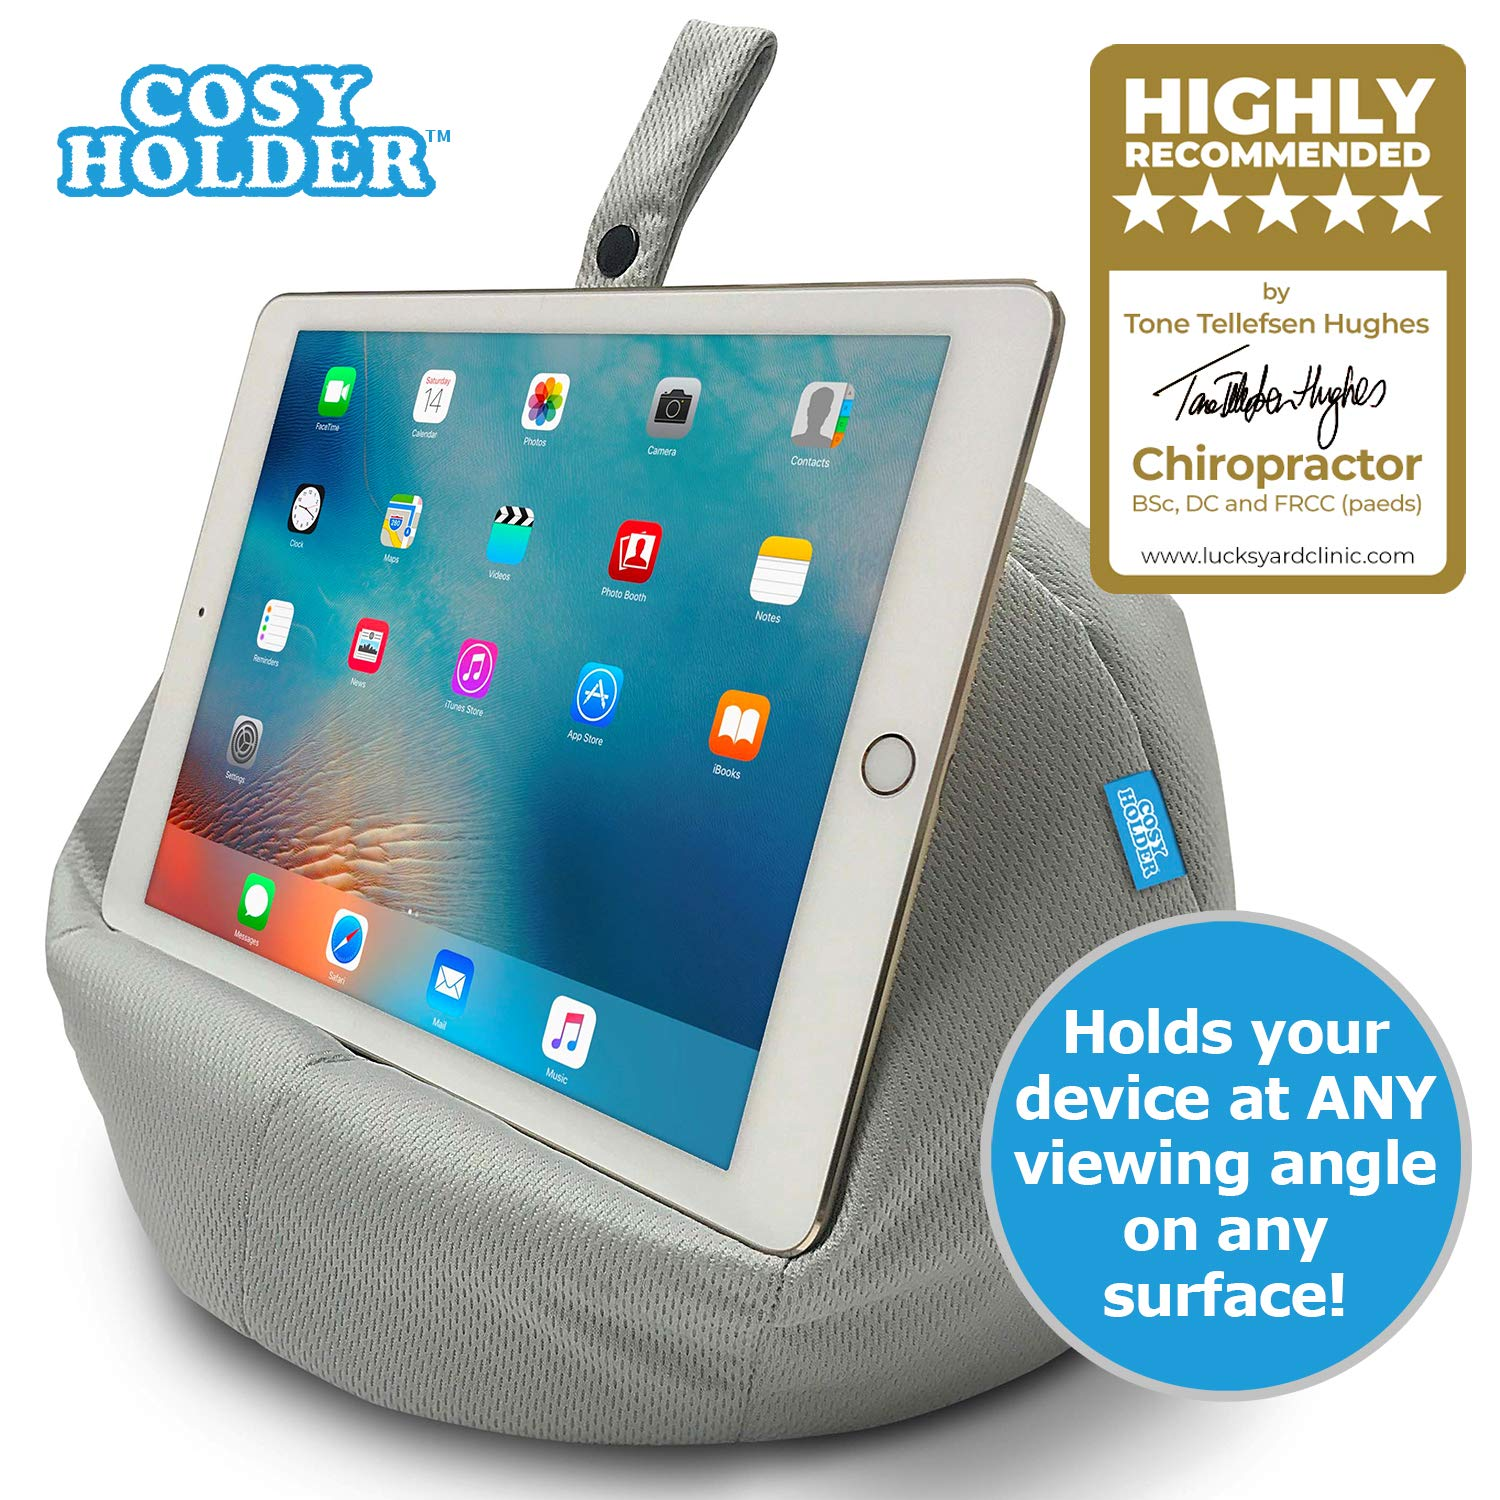 COSY HOLDER Pumpkin Beanbag Cushion - Tablet & E-Reader (eBook) Holder/Stand. Ideal for iPad, Samsung Galaxy, Kindle & Books. Holds Your Device at Any Viewing Angle. Ideal for Home or Travel (Grey)